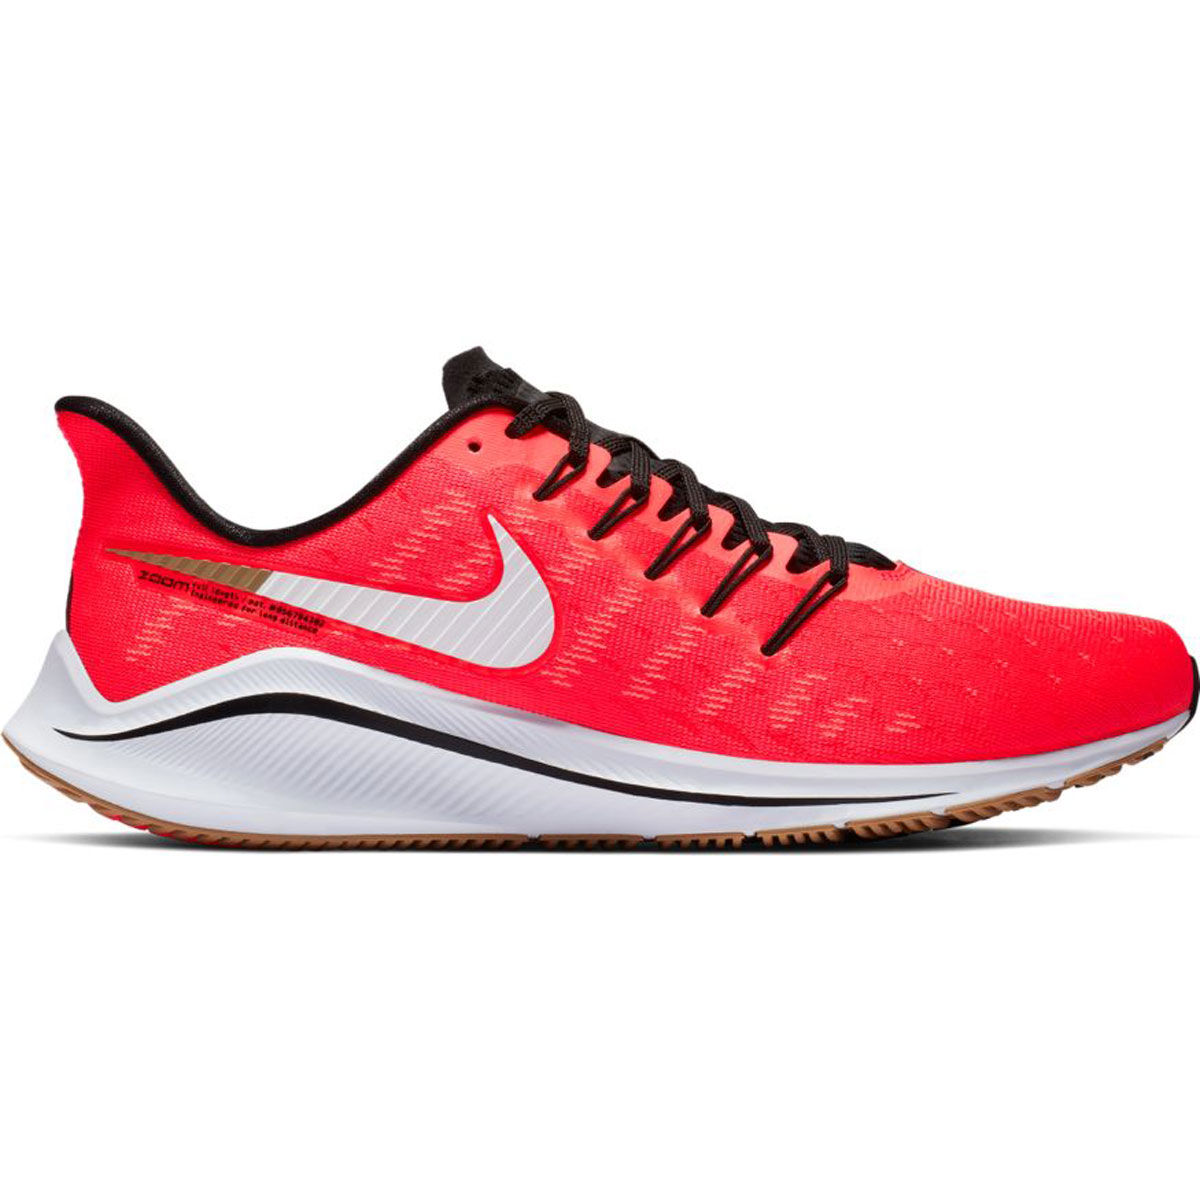 Nike Air Zoom Vomero Mens Running Shoe